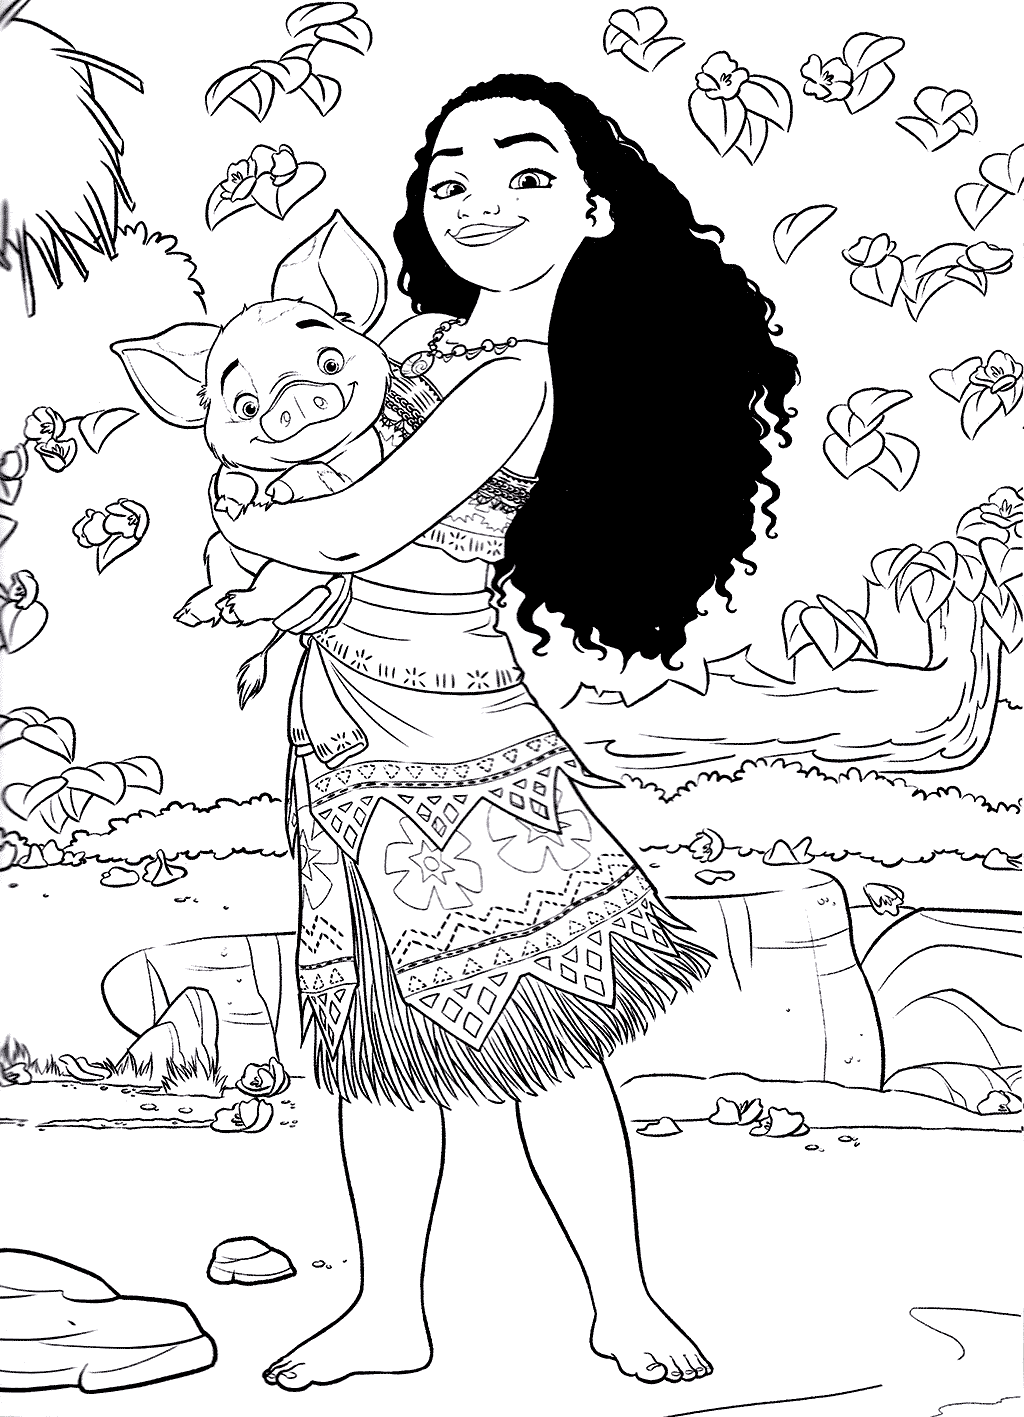 Beautiful Moana coloring page to print and color : Moana and Pua her pig